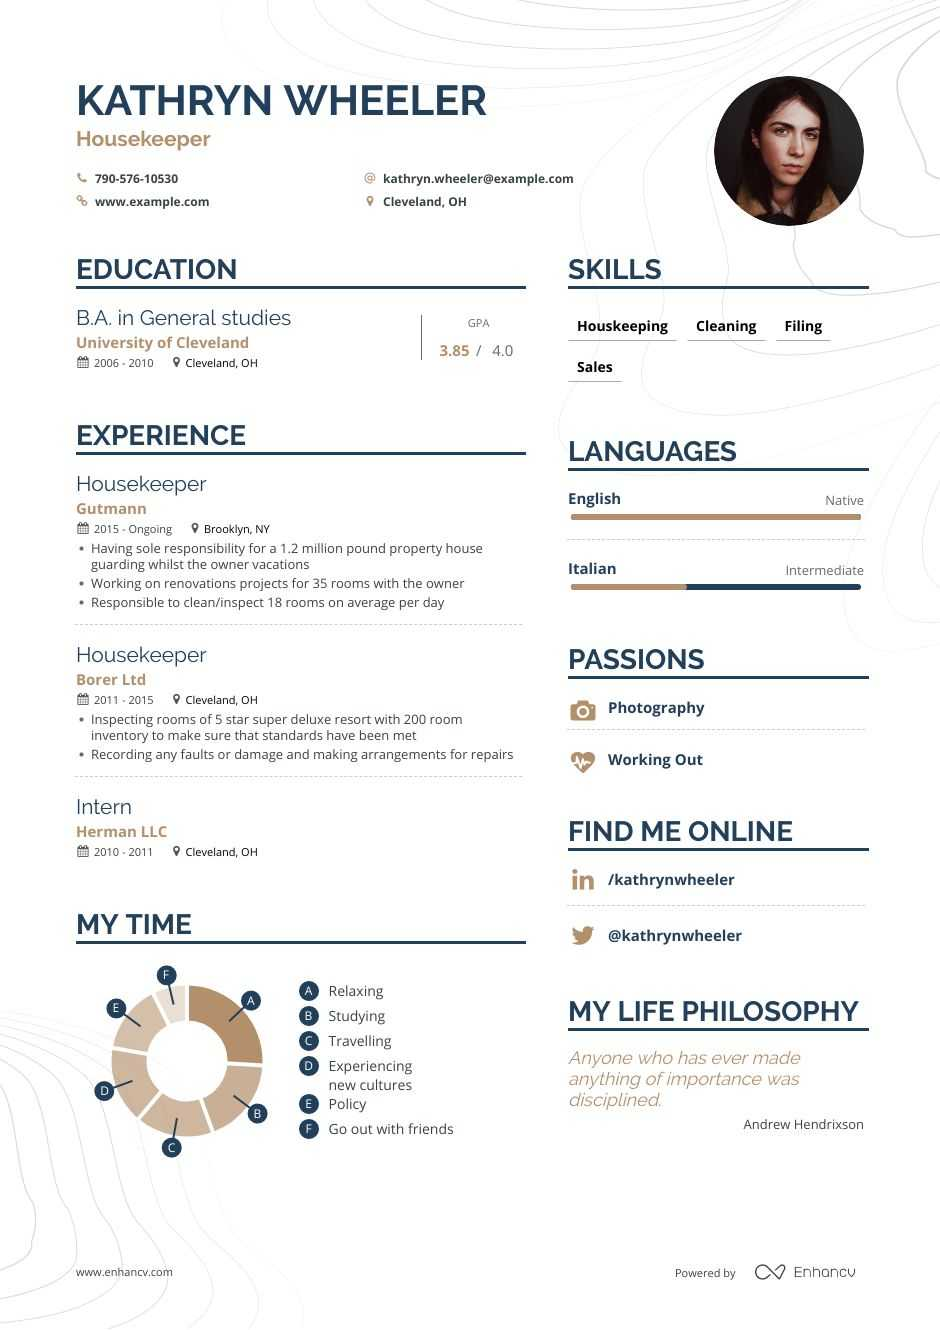 housekeeper resume examples pro tips featured enhancv housekeeping experience for Resume Housekeeping Experience For Resume